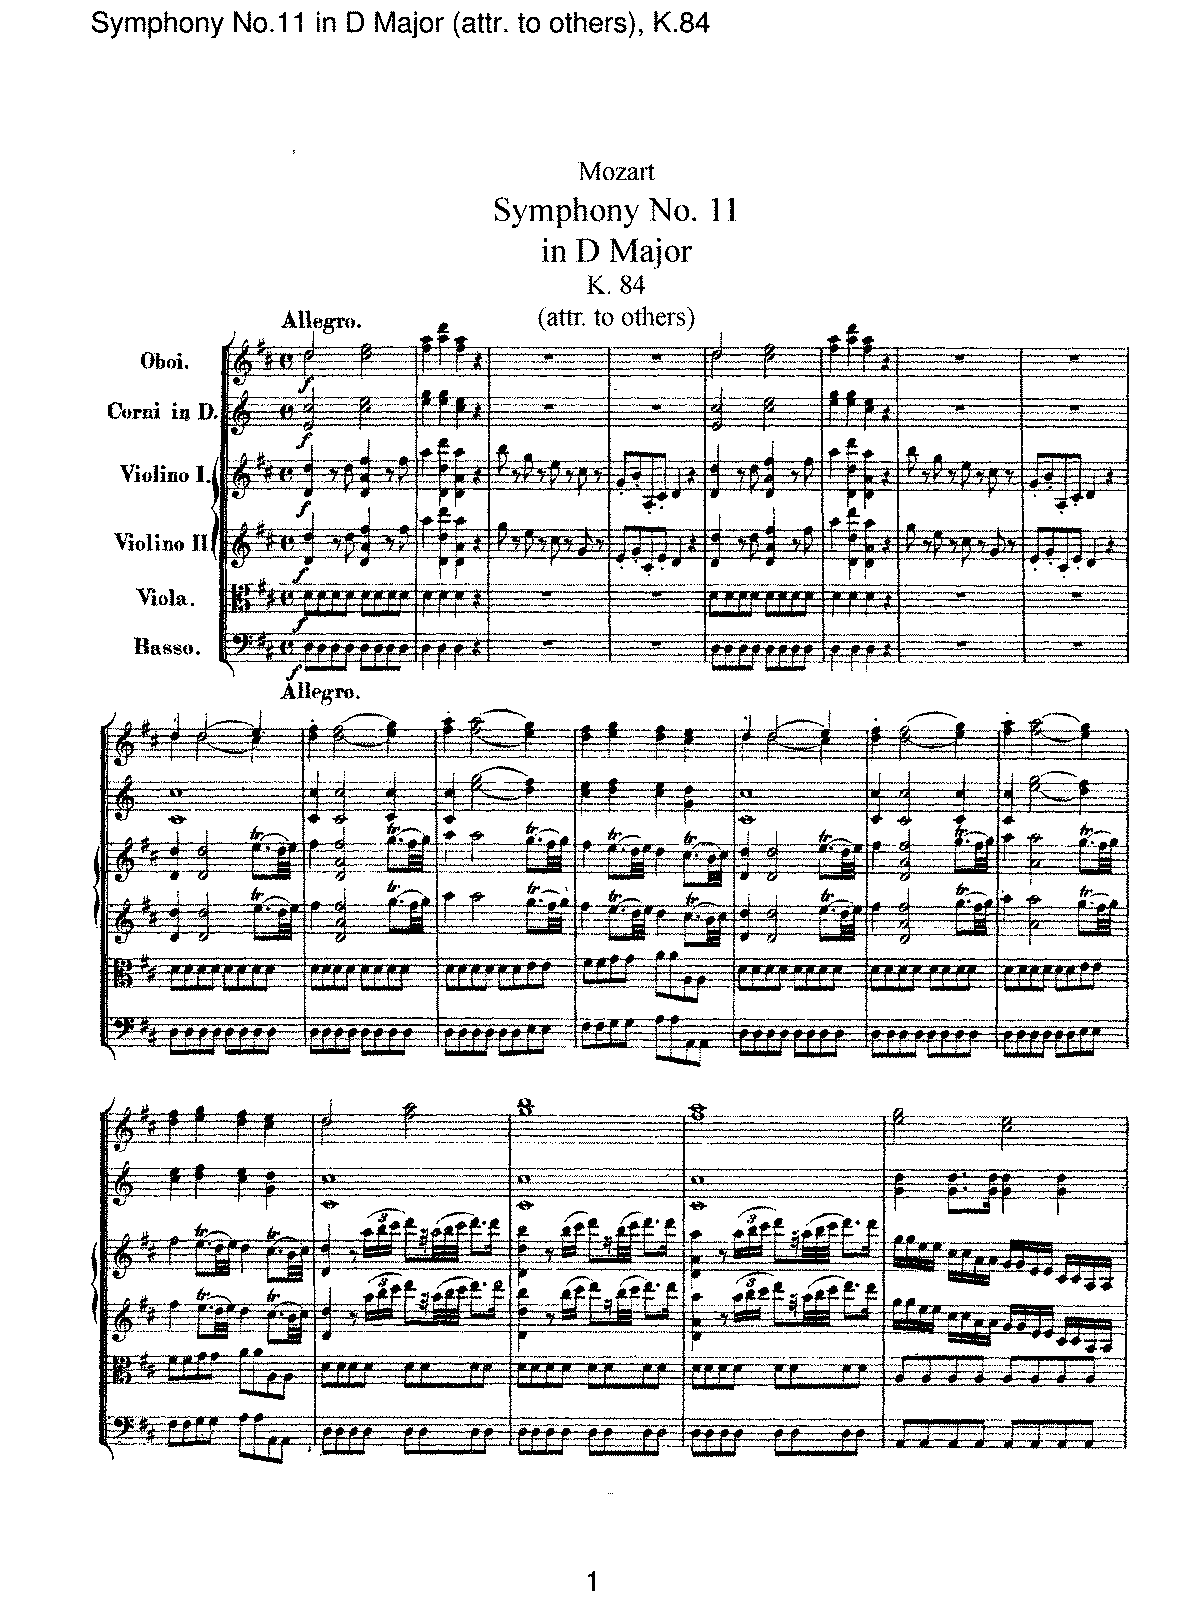 Mozart - Symphony No 11 in D Major (attr. to others), K.84.pdf